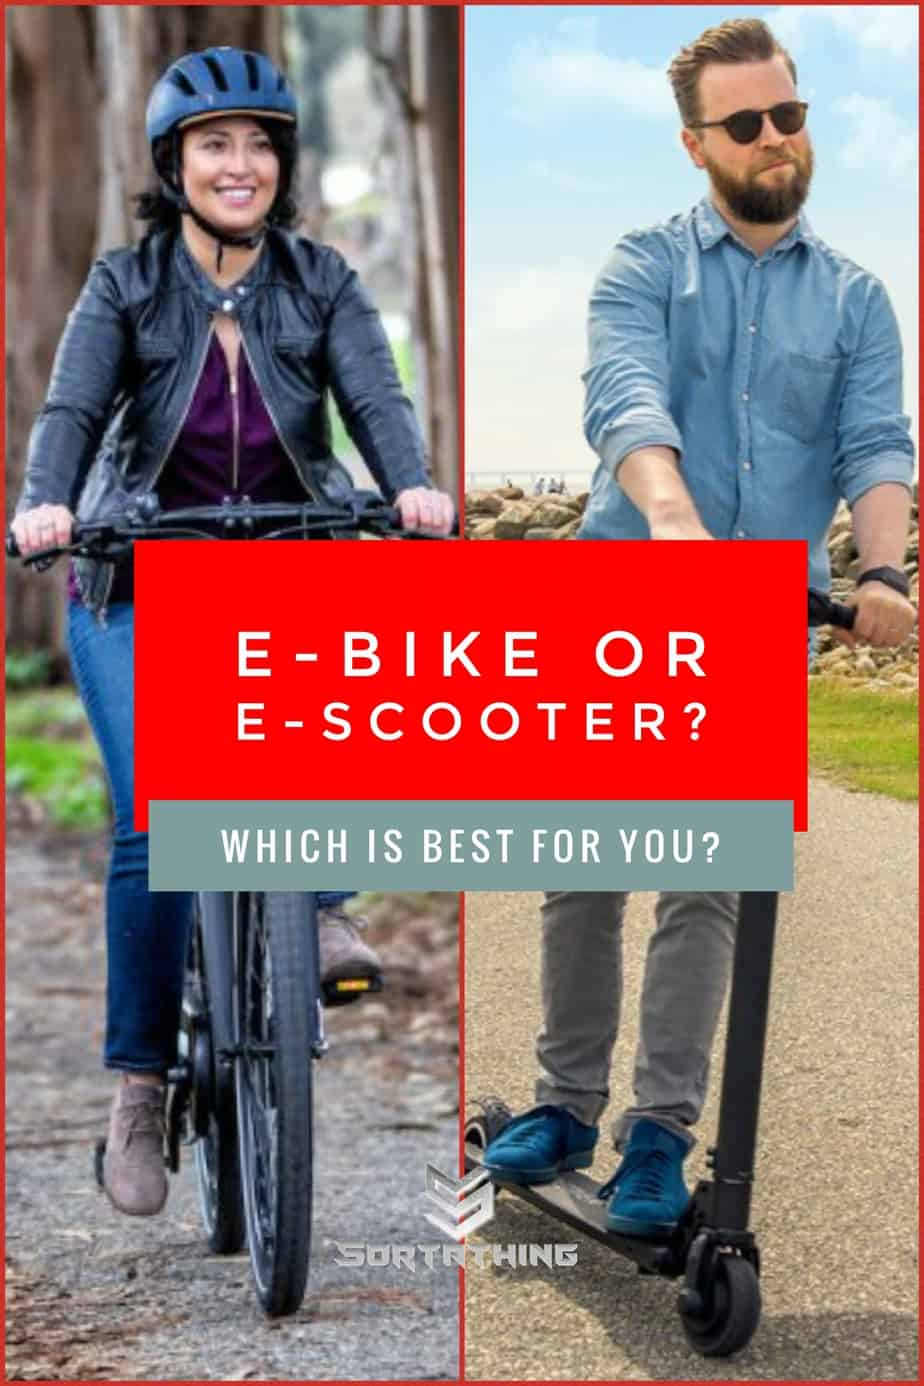 E-Bike or E-Scooter: Which is best?